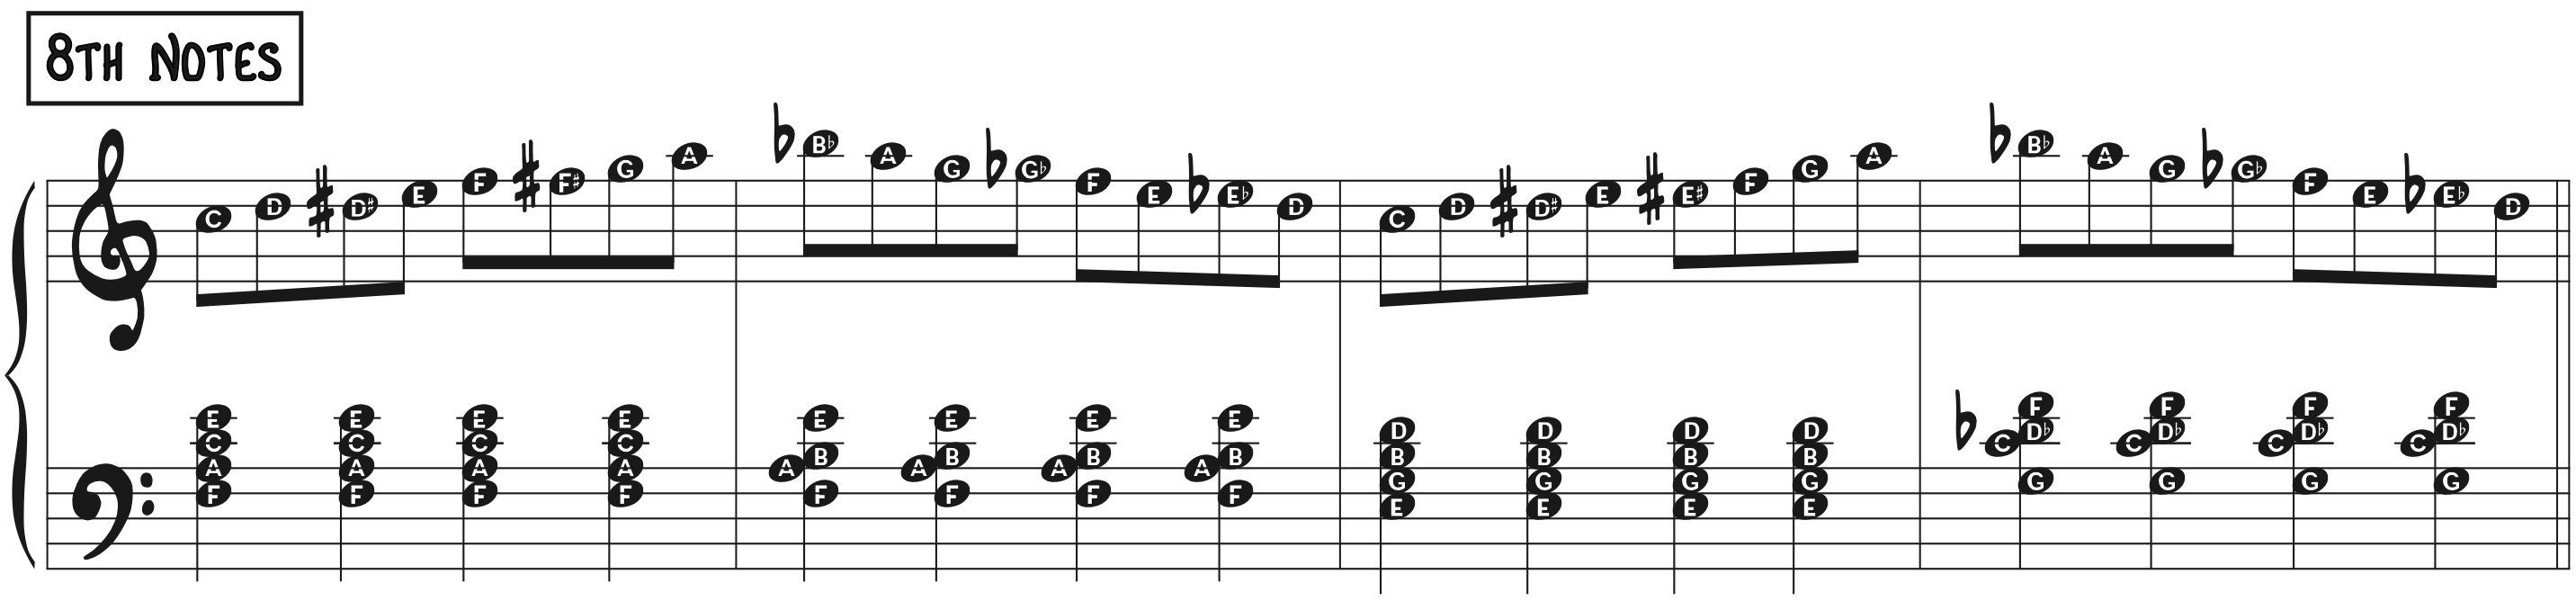 8th Note Exercise